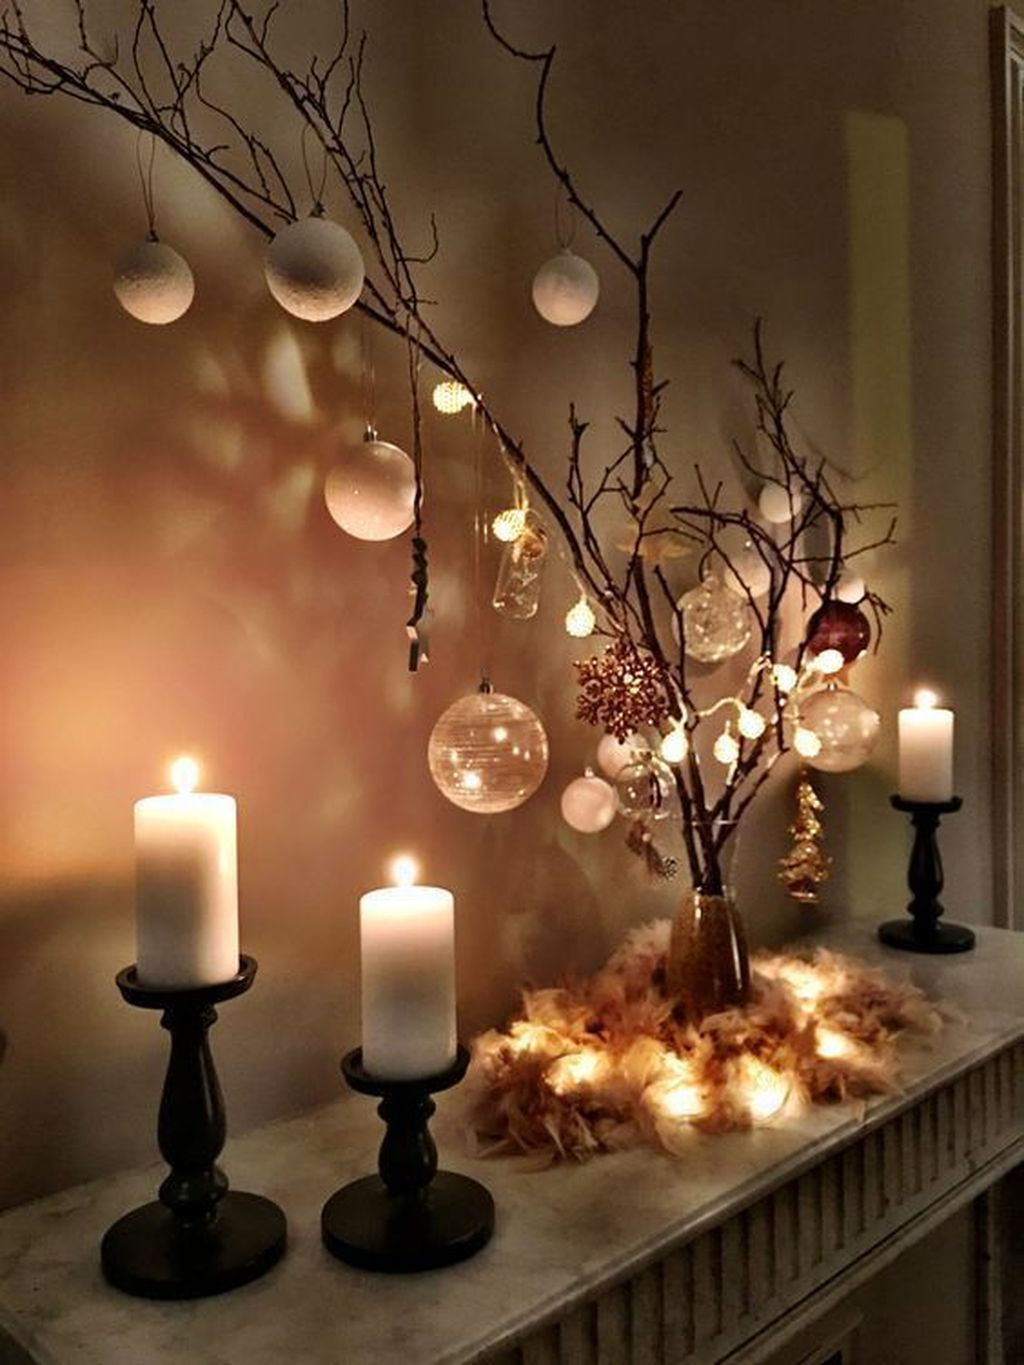 Popular Christmas Theme Apartment Decorations 19